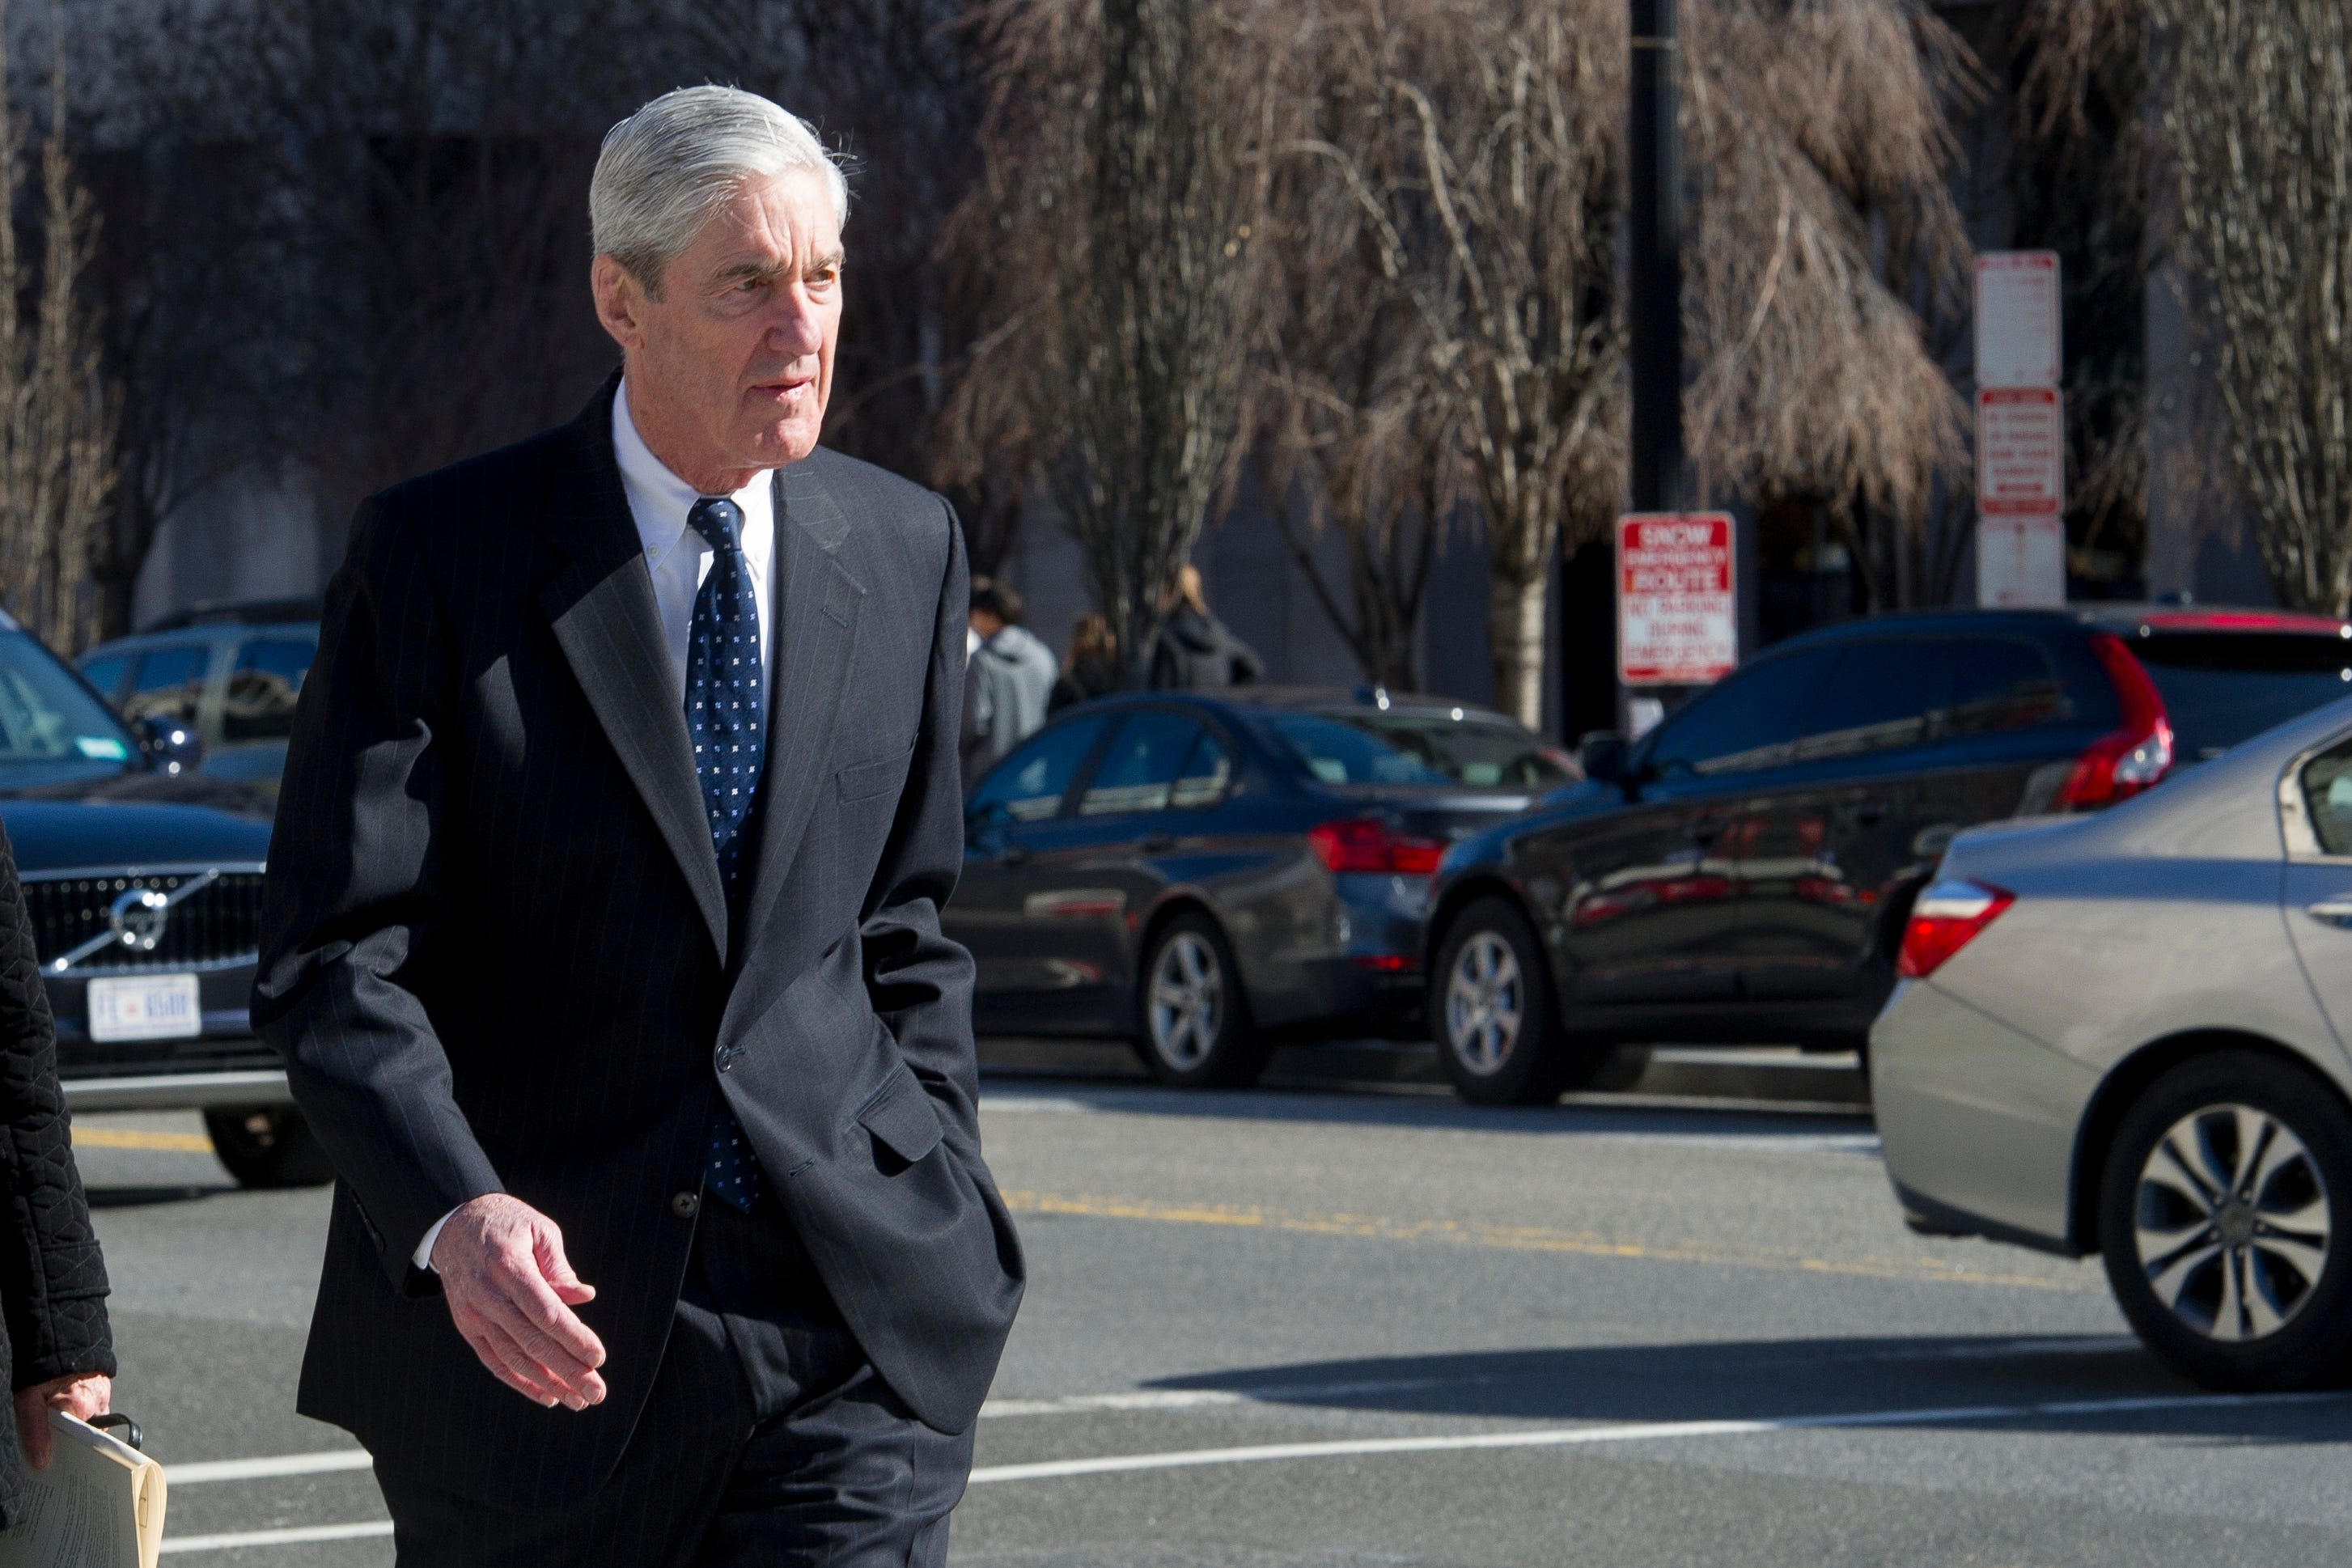 mueller-report-apple-aposspecial-event-apos-aposus-apos-5-things-to-know-monday